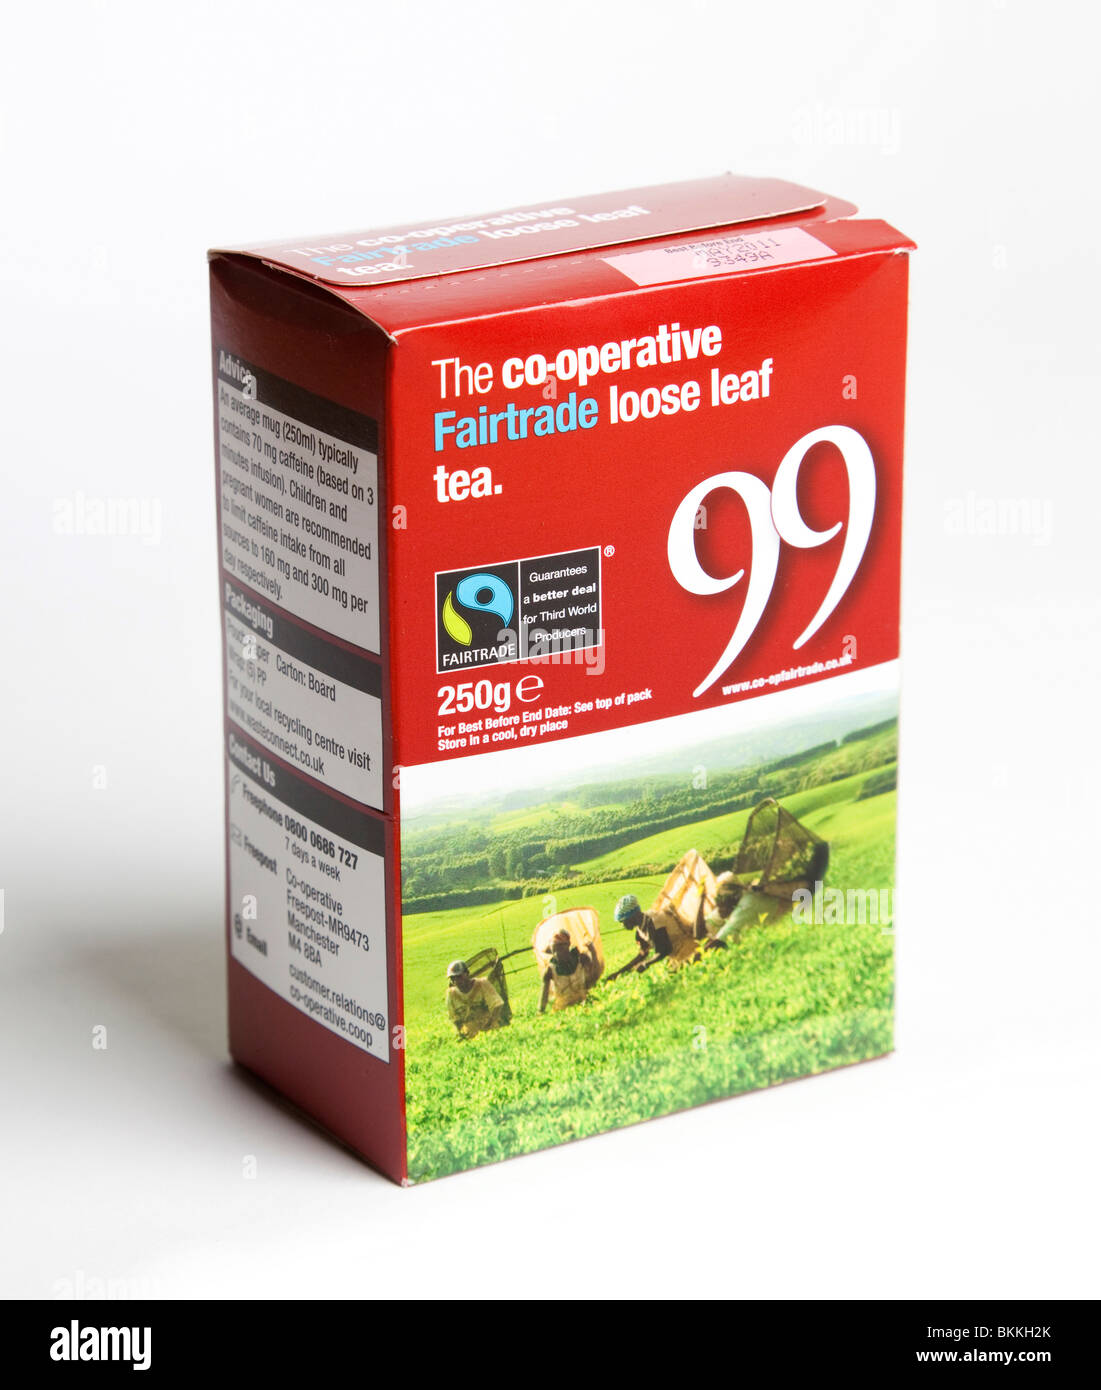 co-operative Fairtrade pack of tea leaves - Stock Image